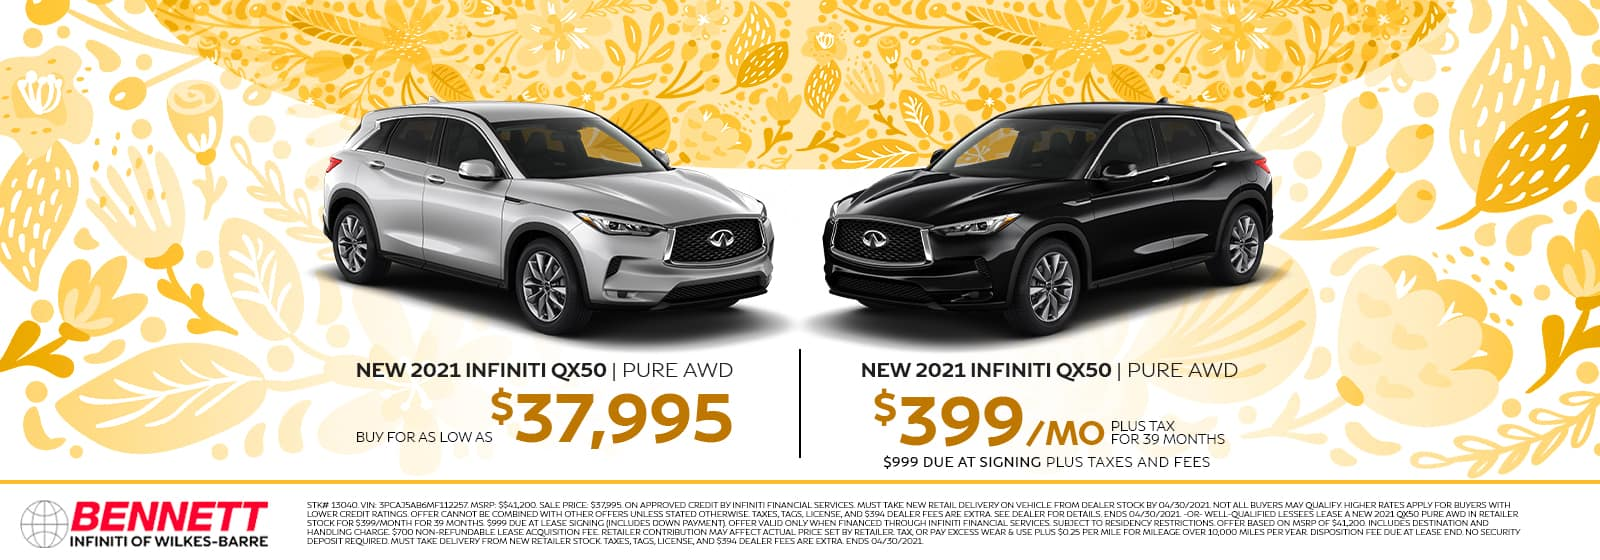 New 2021 INFINITI QX50 Pure AWD - Buy for as low as $37,995 | New 2021 INFINITI QX50 Pure AWD - $399/mo plus tax for 39 months, $399 due at signing plus taxes and fees.